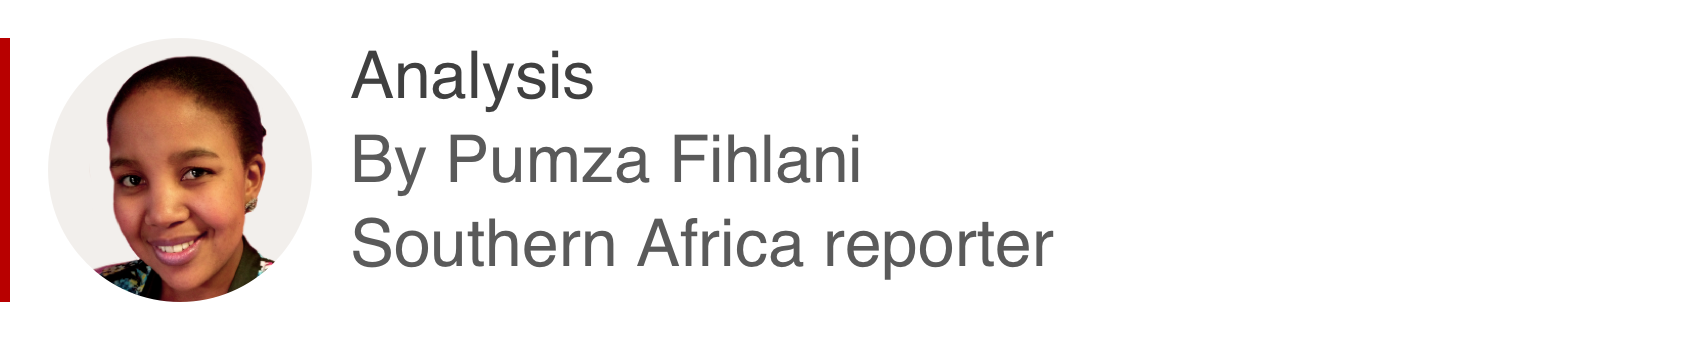 Analysis box by Pumza Fihlani, southern Africa reporter